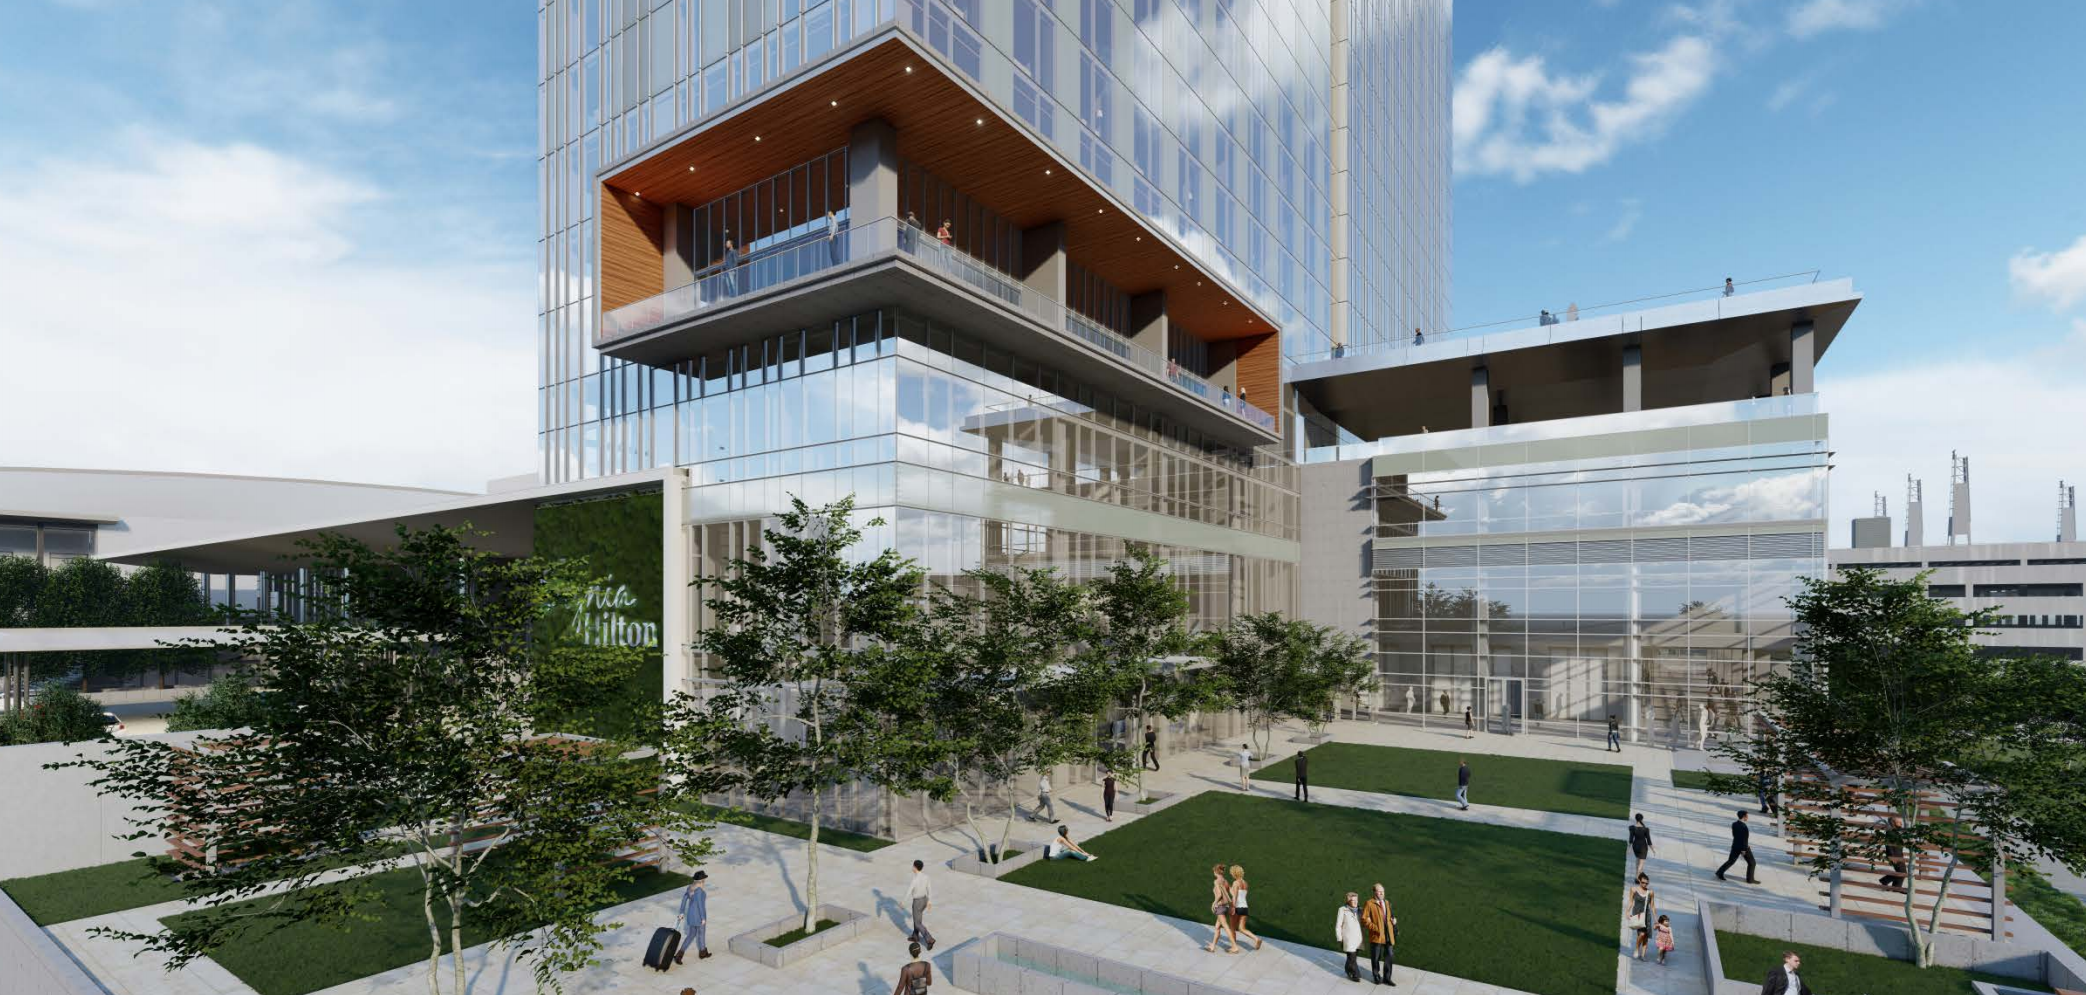 A rendering of the ground floor of the proposed glassy hotel.